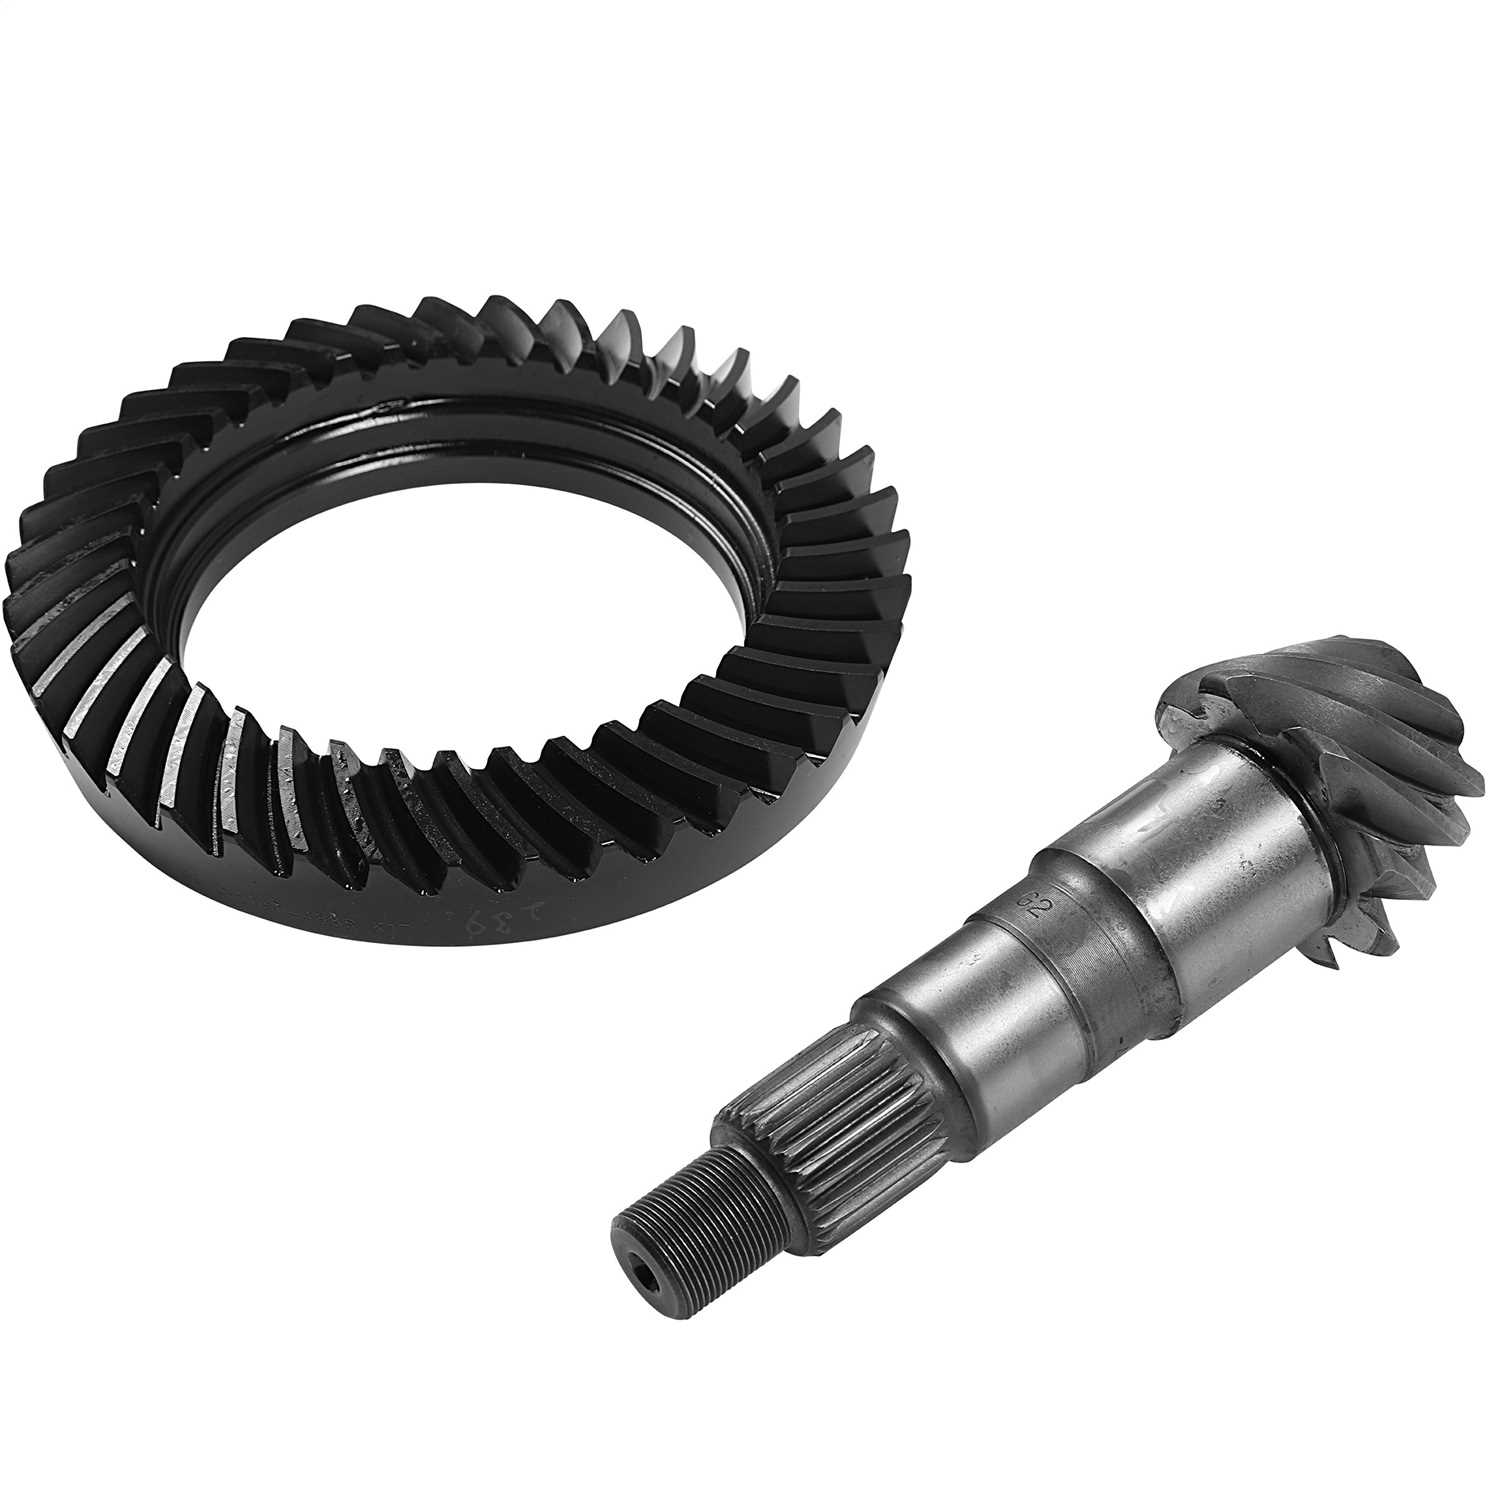 1-2151-410R G2 Axle and Gear Ring and Pinion Set